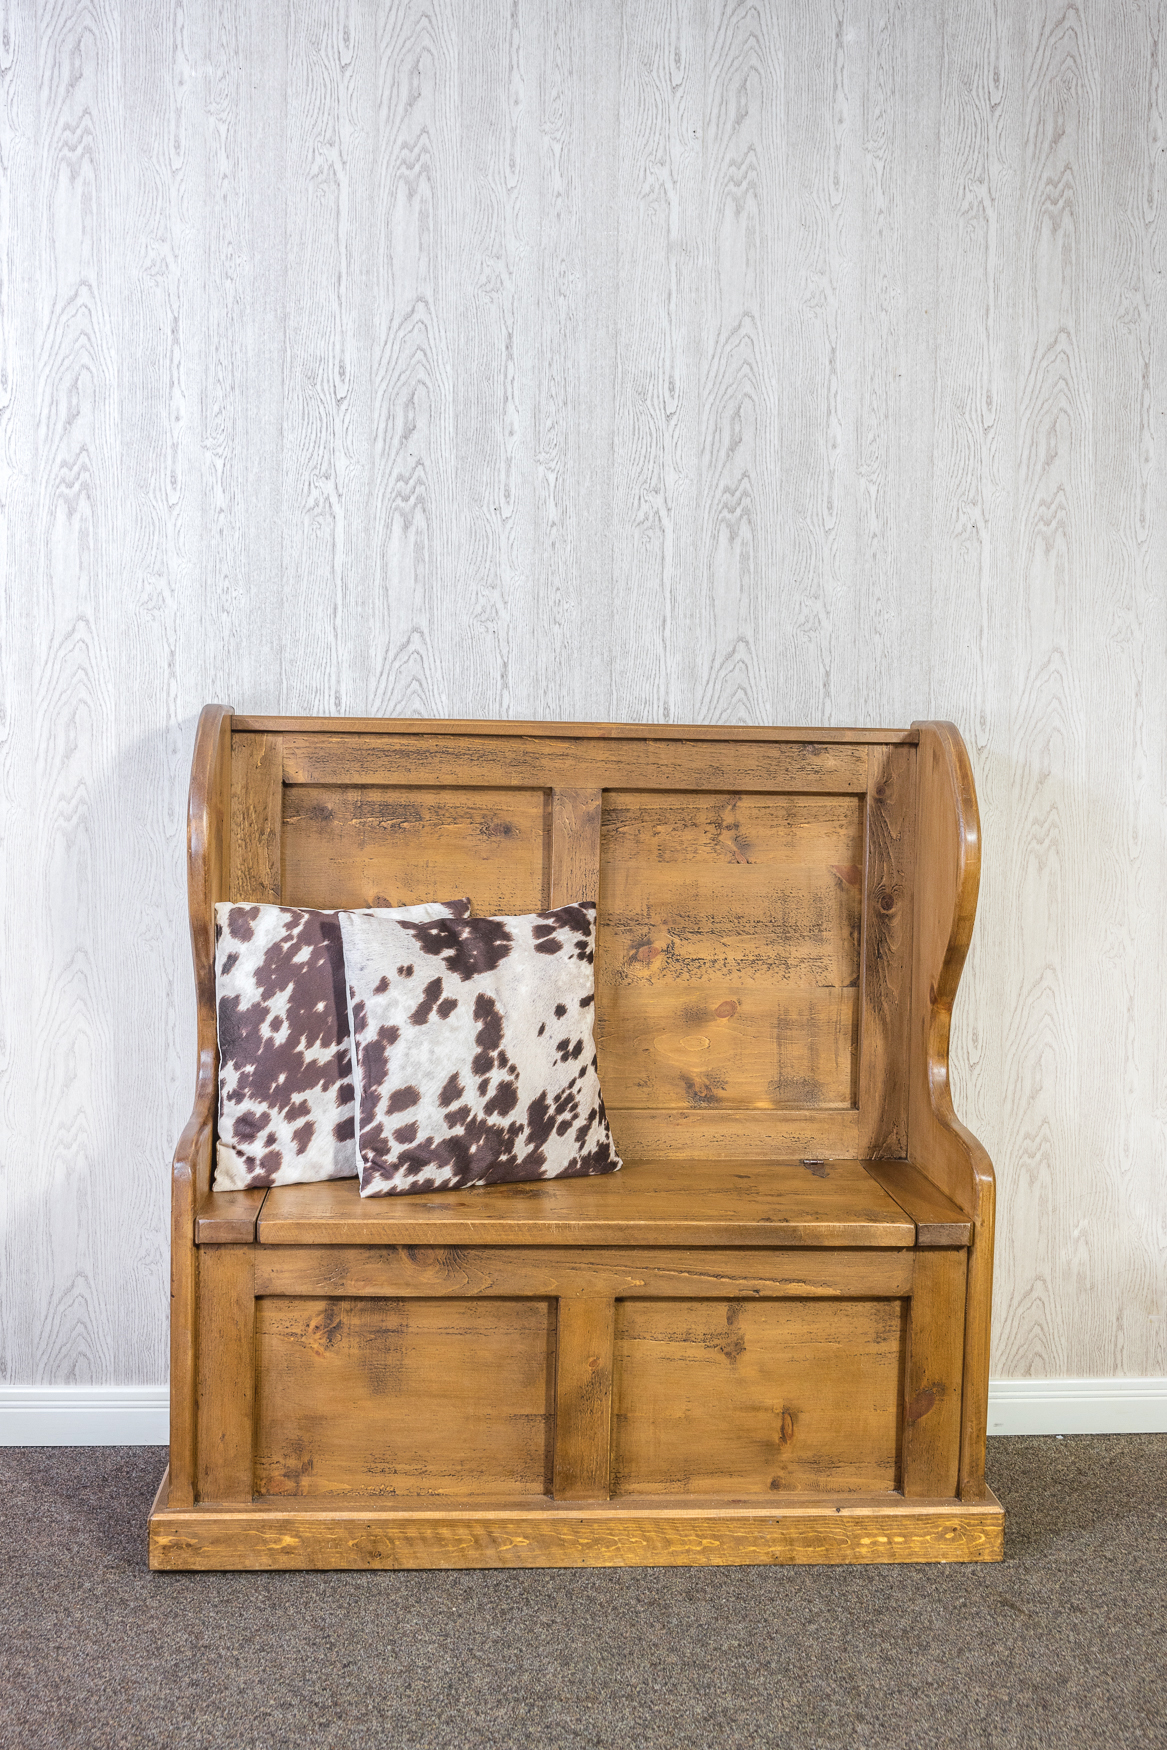 RUSTIC Pew Bench - With Storage